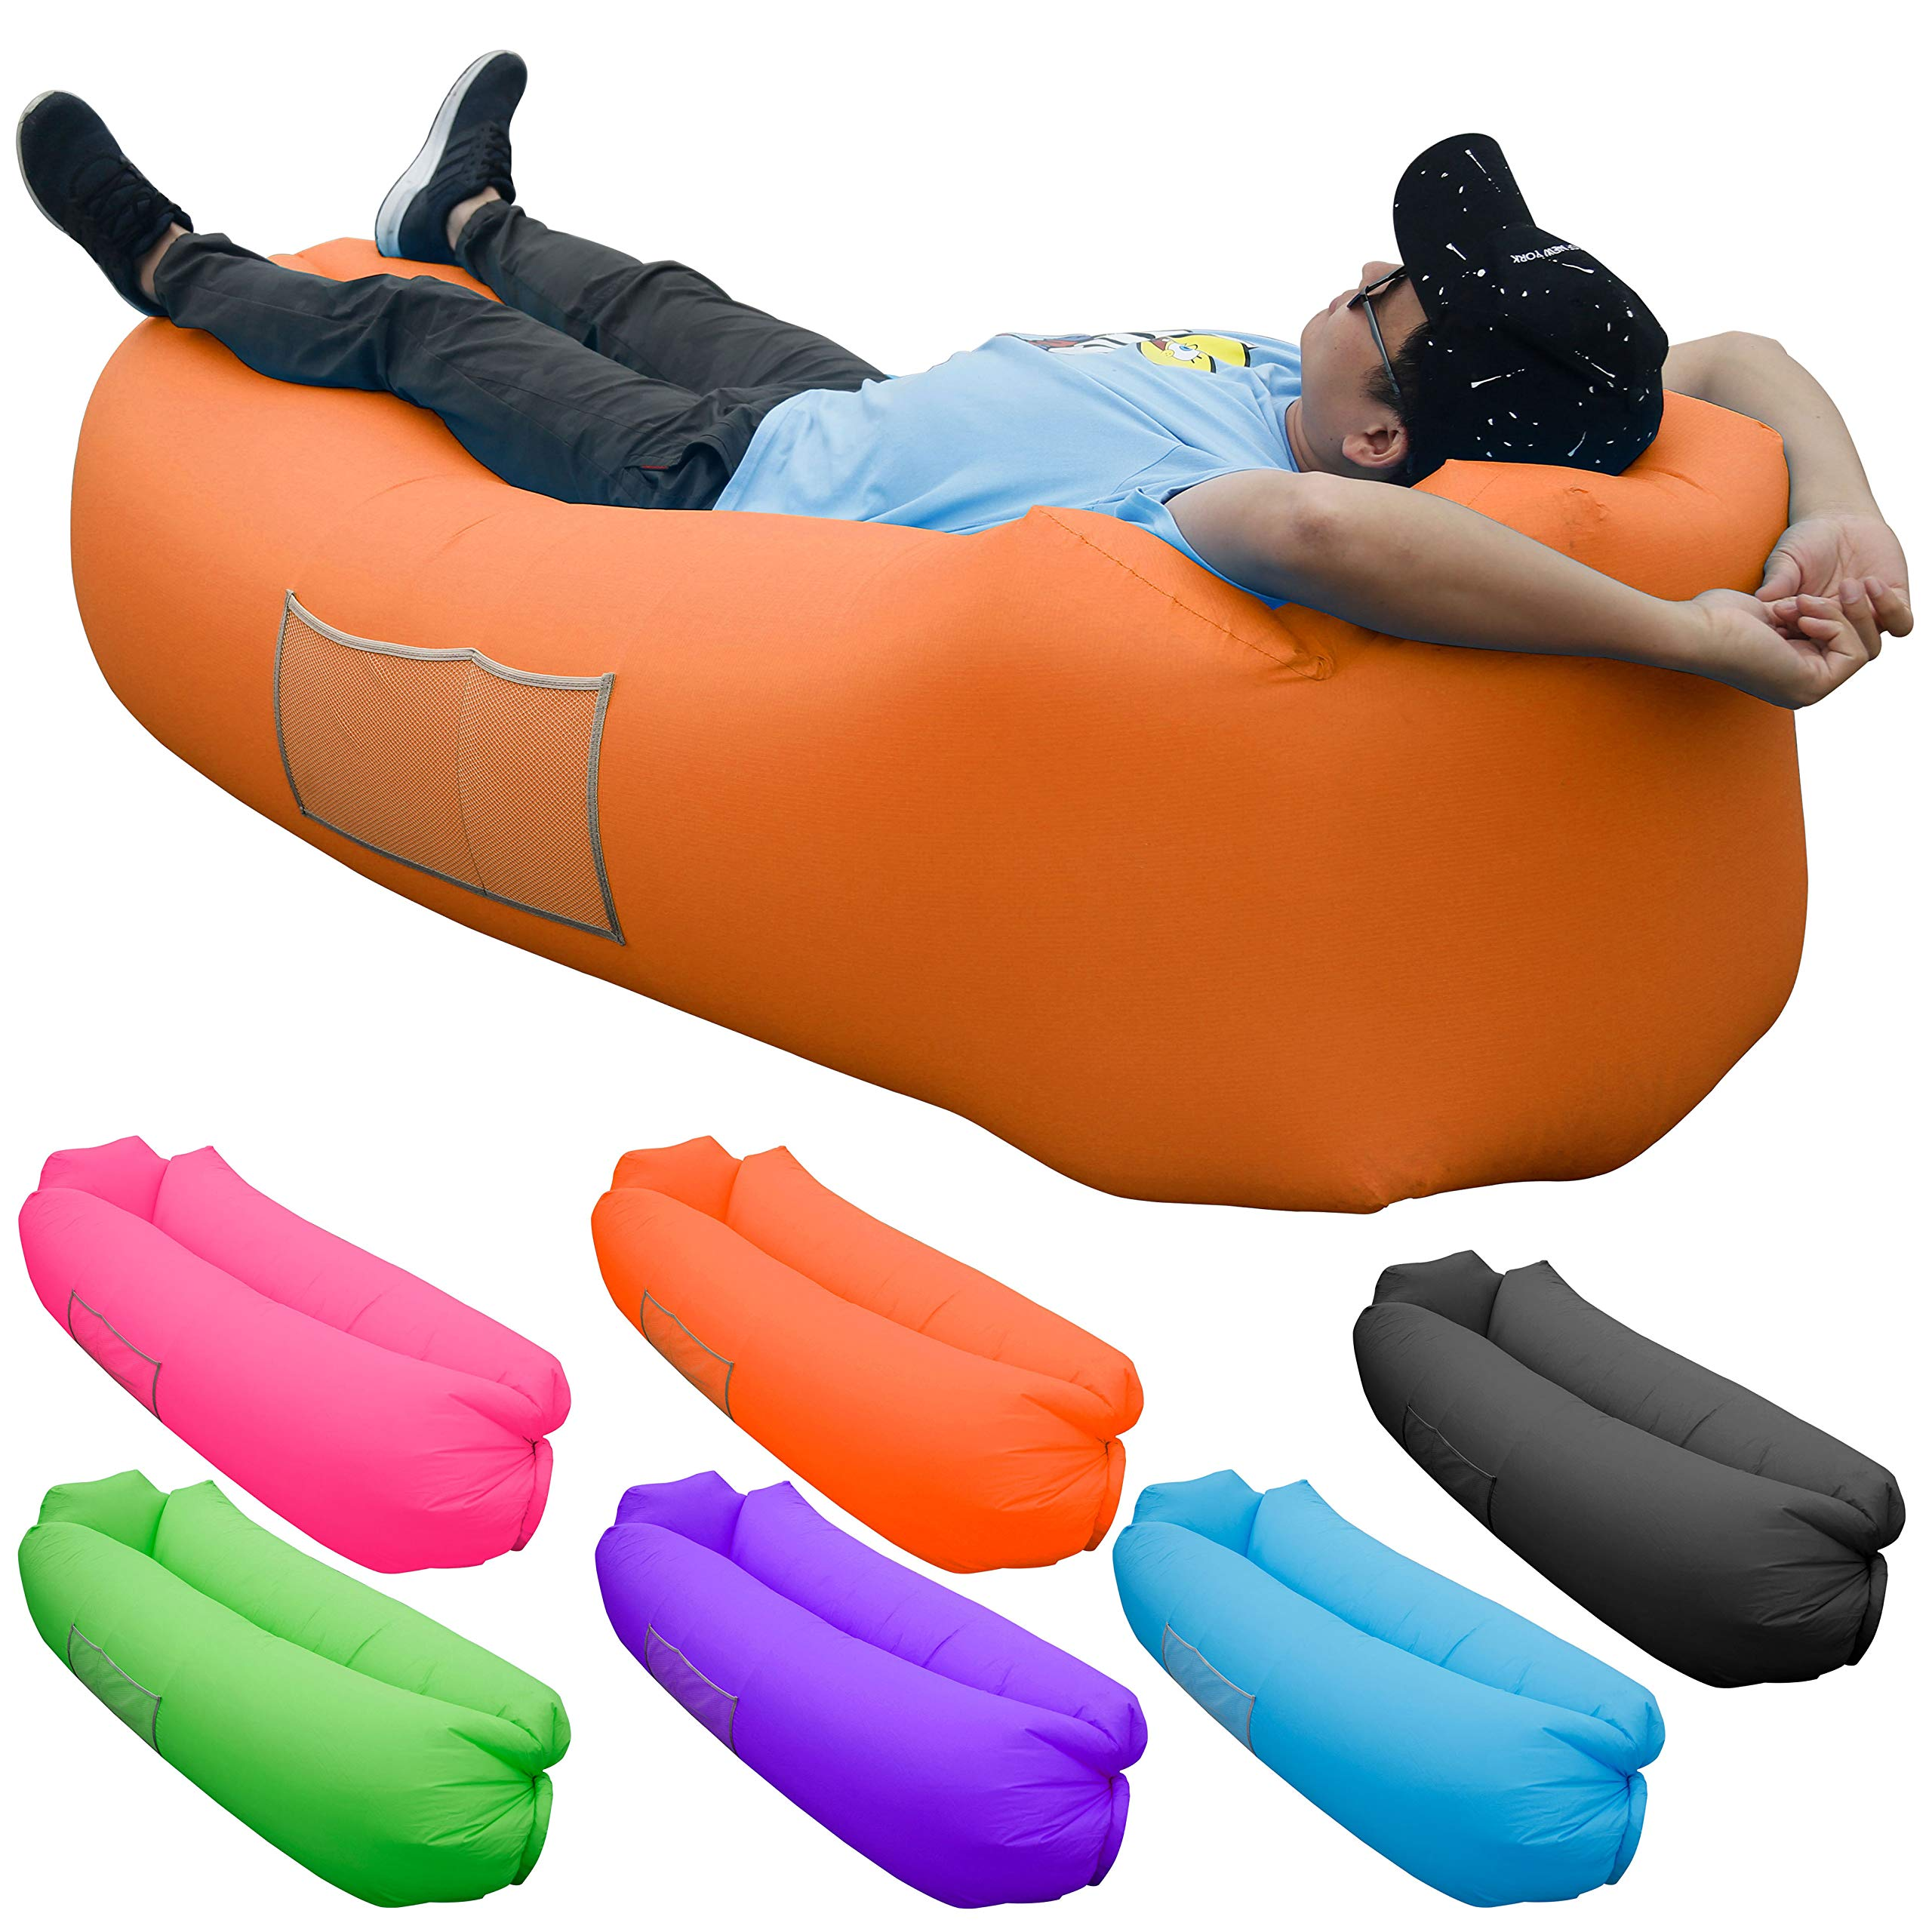 Skoloo Inflatable Lounger Air Sofa, Portable Water Proof Anti-Air Leaking & Pillow-Shaped Designed Couch for Backyard Pool Travel Camping Hiking Lakeside Picnics Music Festivals Beach Parties,Orange by Skoloo